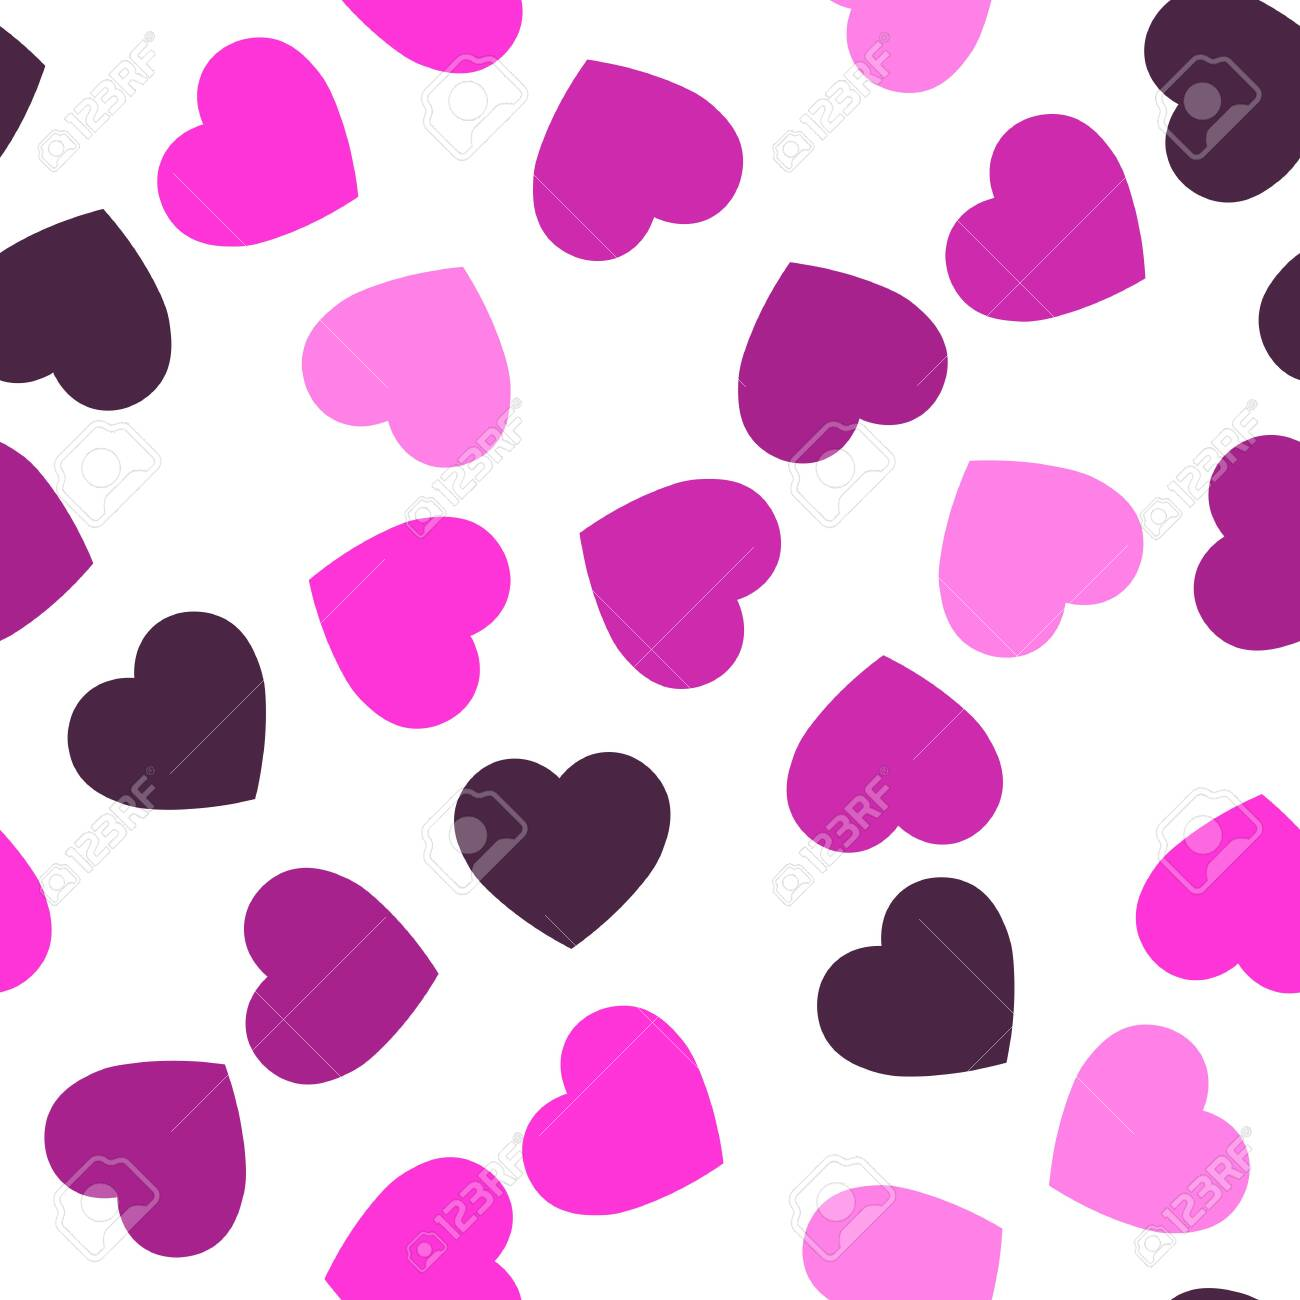 Pink hearts seamless pattern. Random scattered hearts background. Love or Valentine theme. Vector illustration. - 122745230